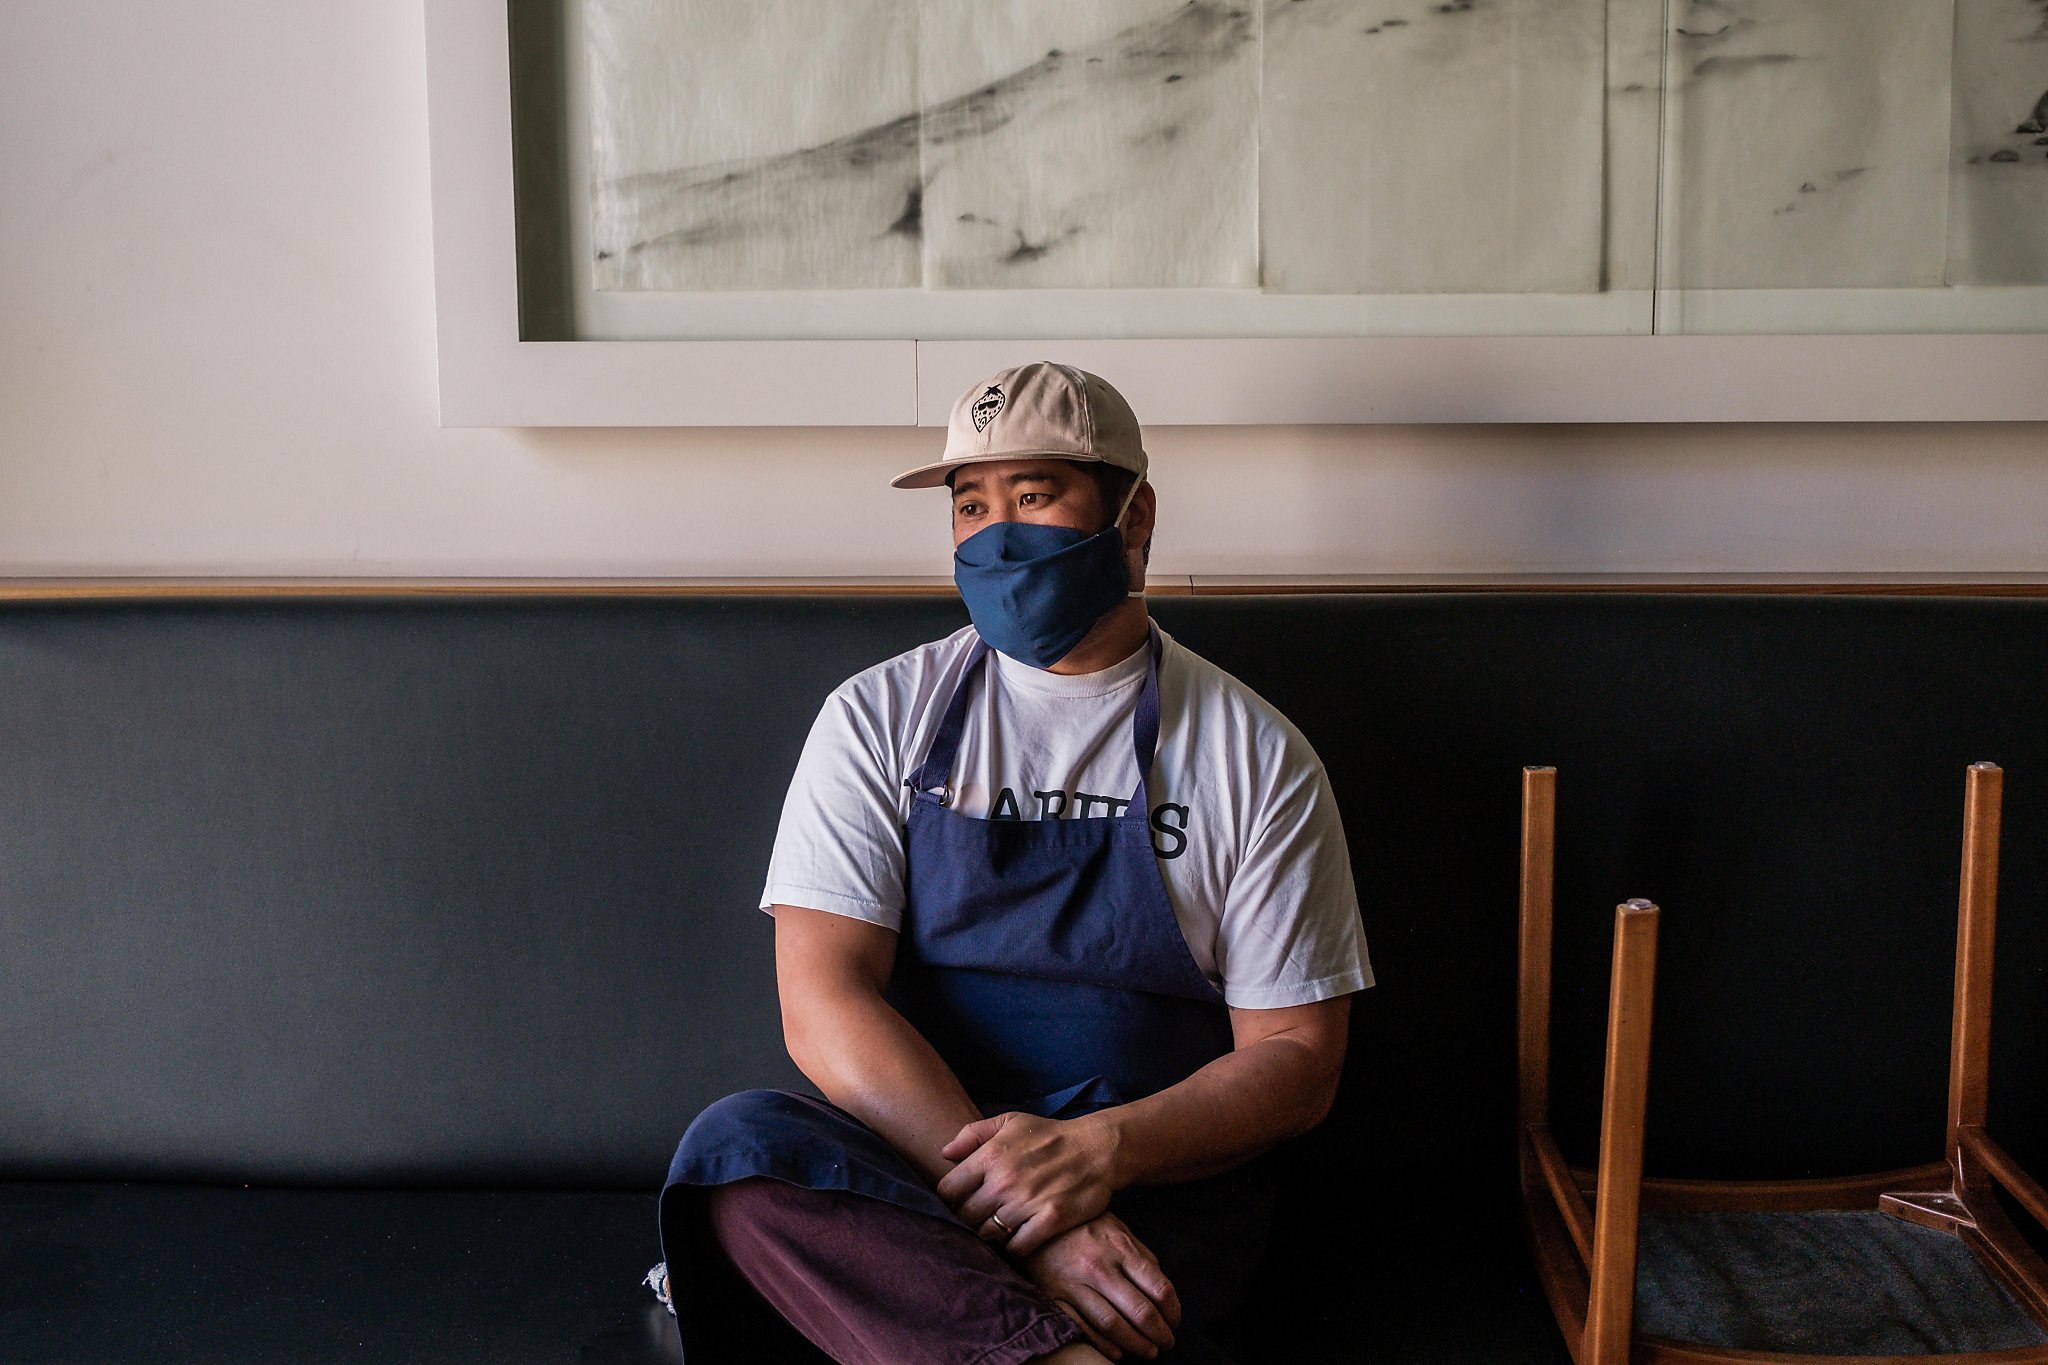 sfchronicle.com - Justin Phillips - More San Francisco restaurants are mulling a drastic step this winter: closing for 'hibernation'